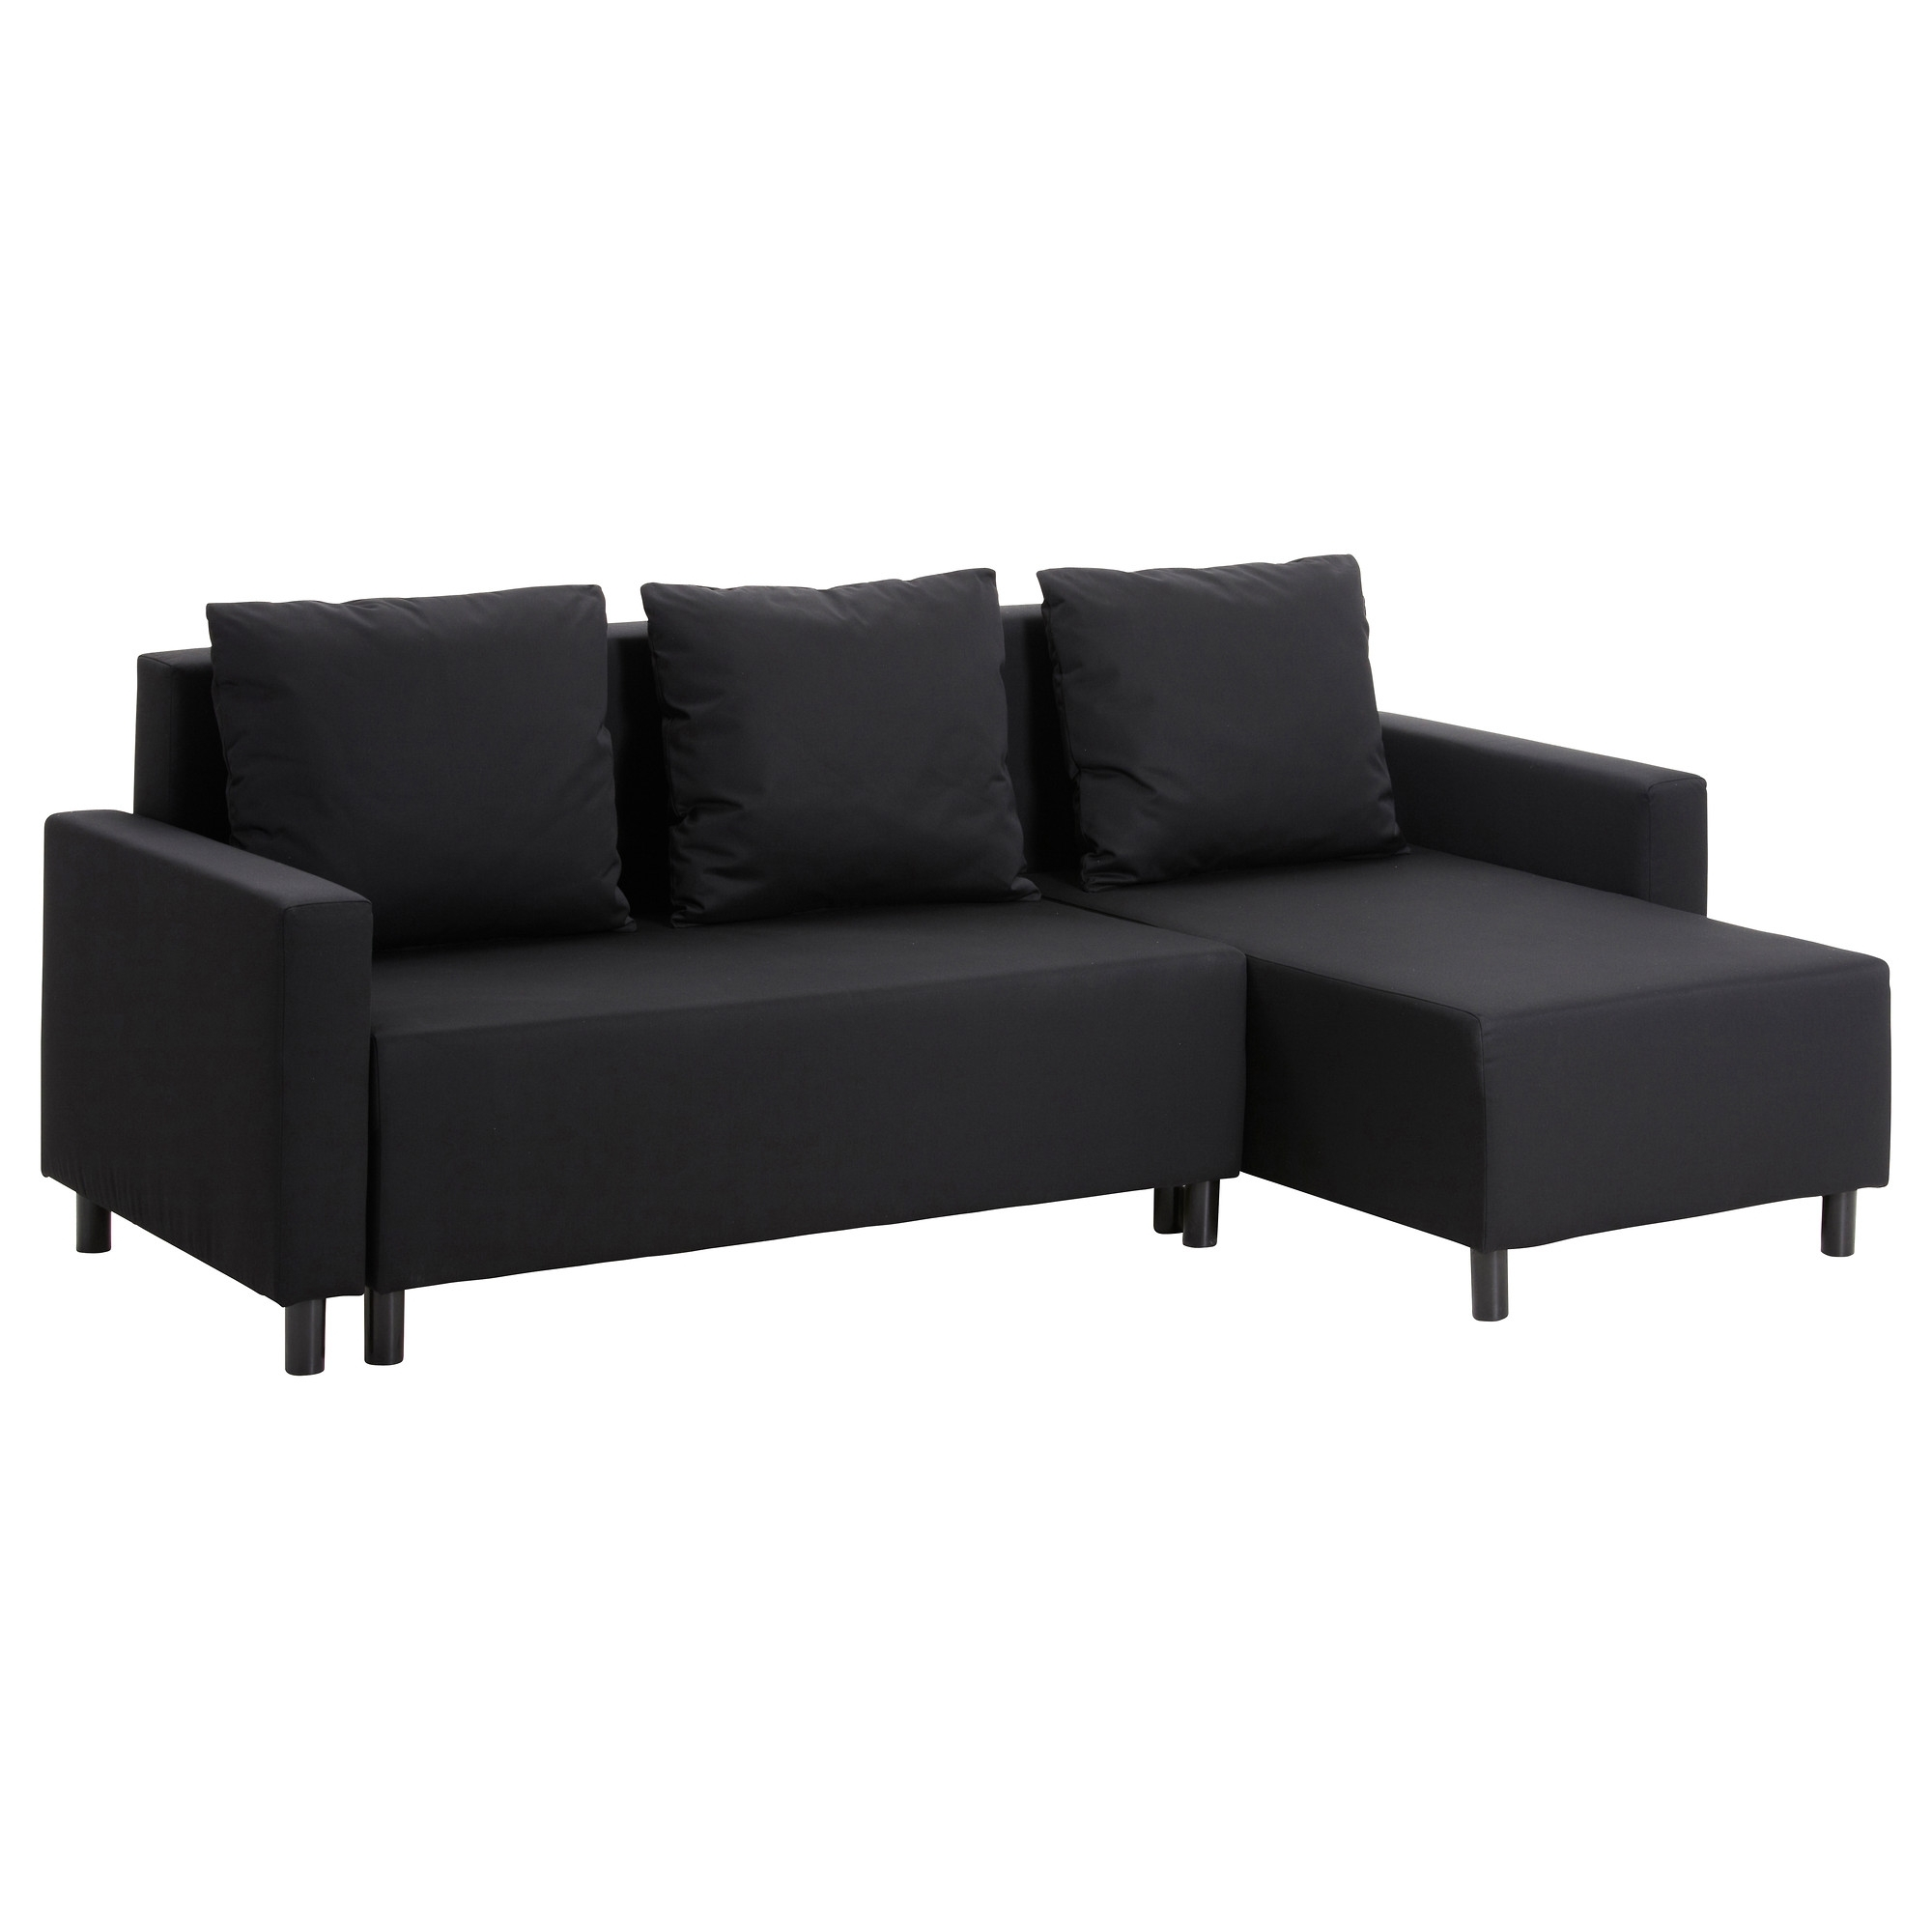 Trendy Chaise Lounge Sofa Beds In Lugnvik Sofa Bed With Chaise Lounge – Granån Black – Ikea (View 10 of 15)